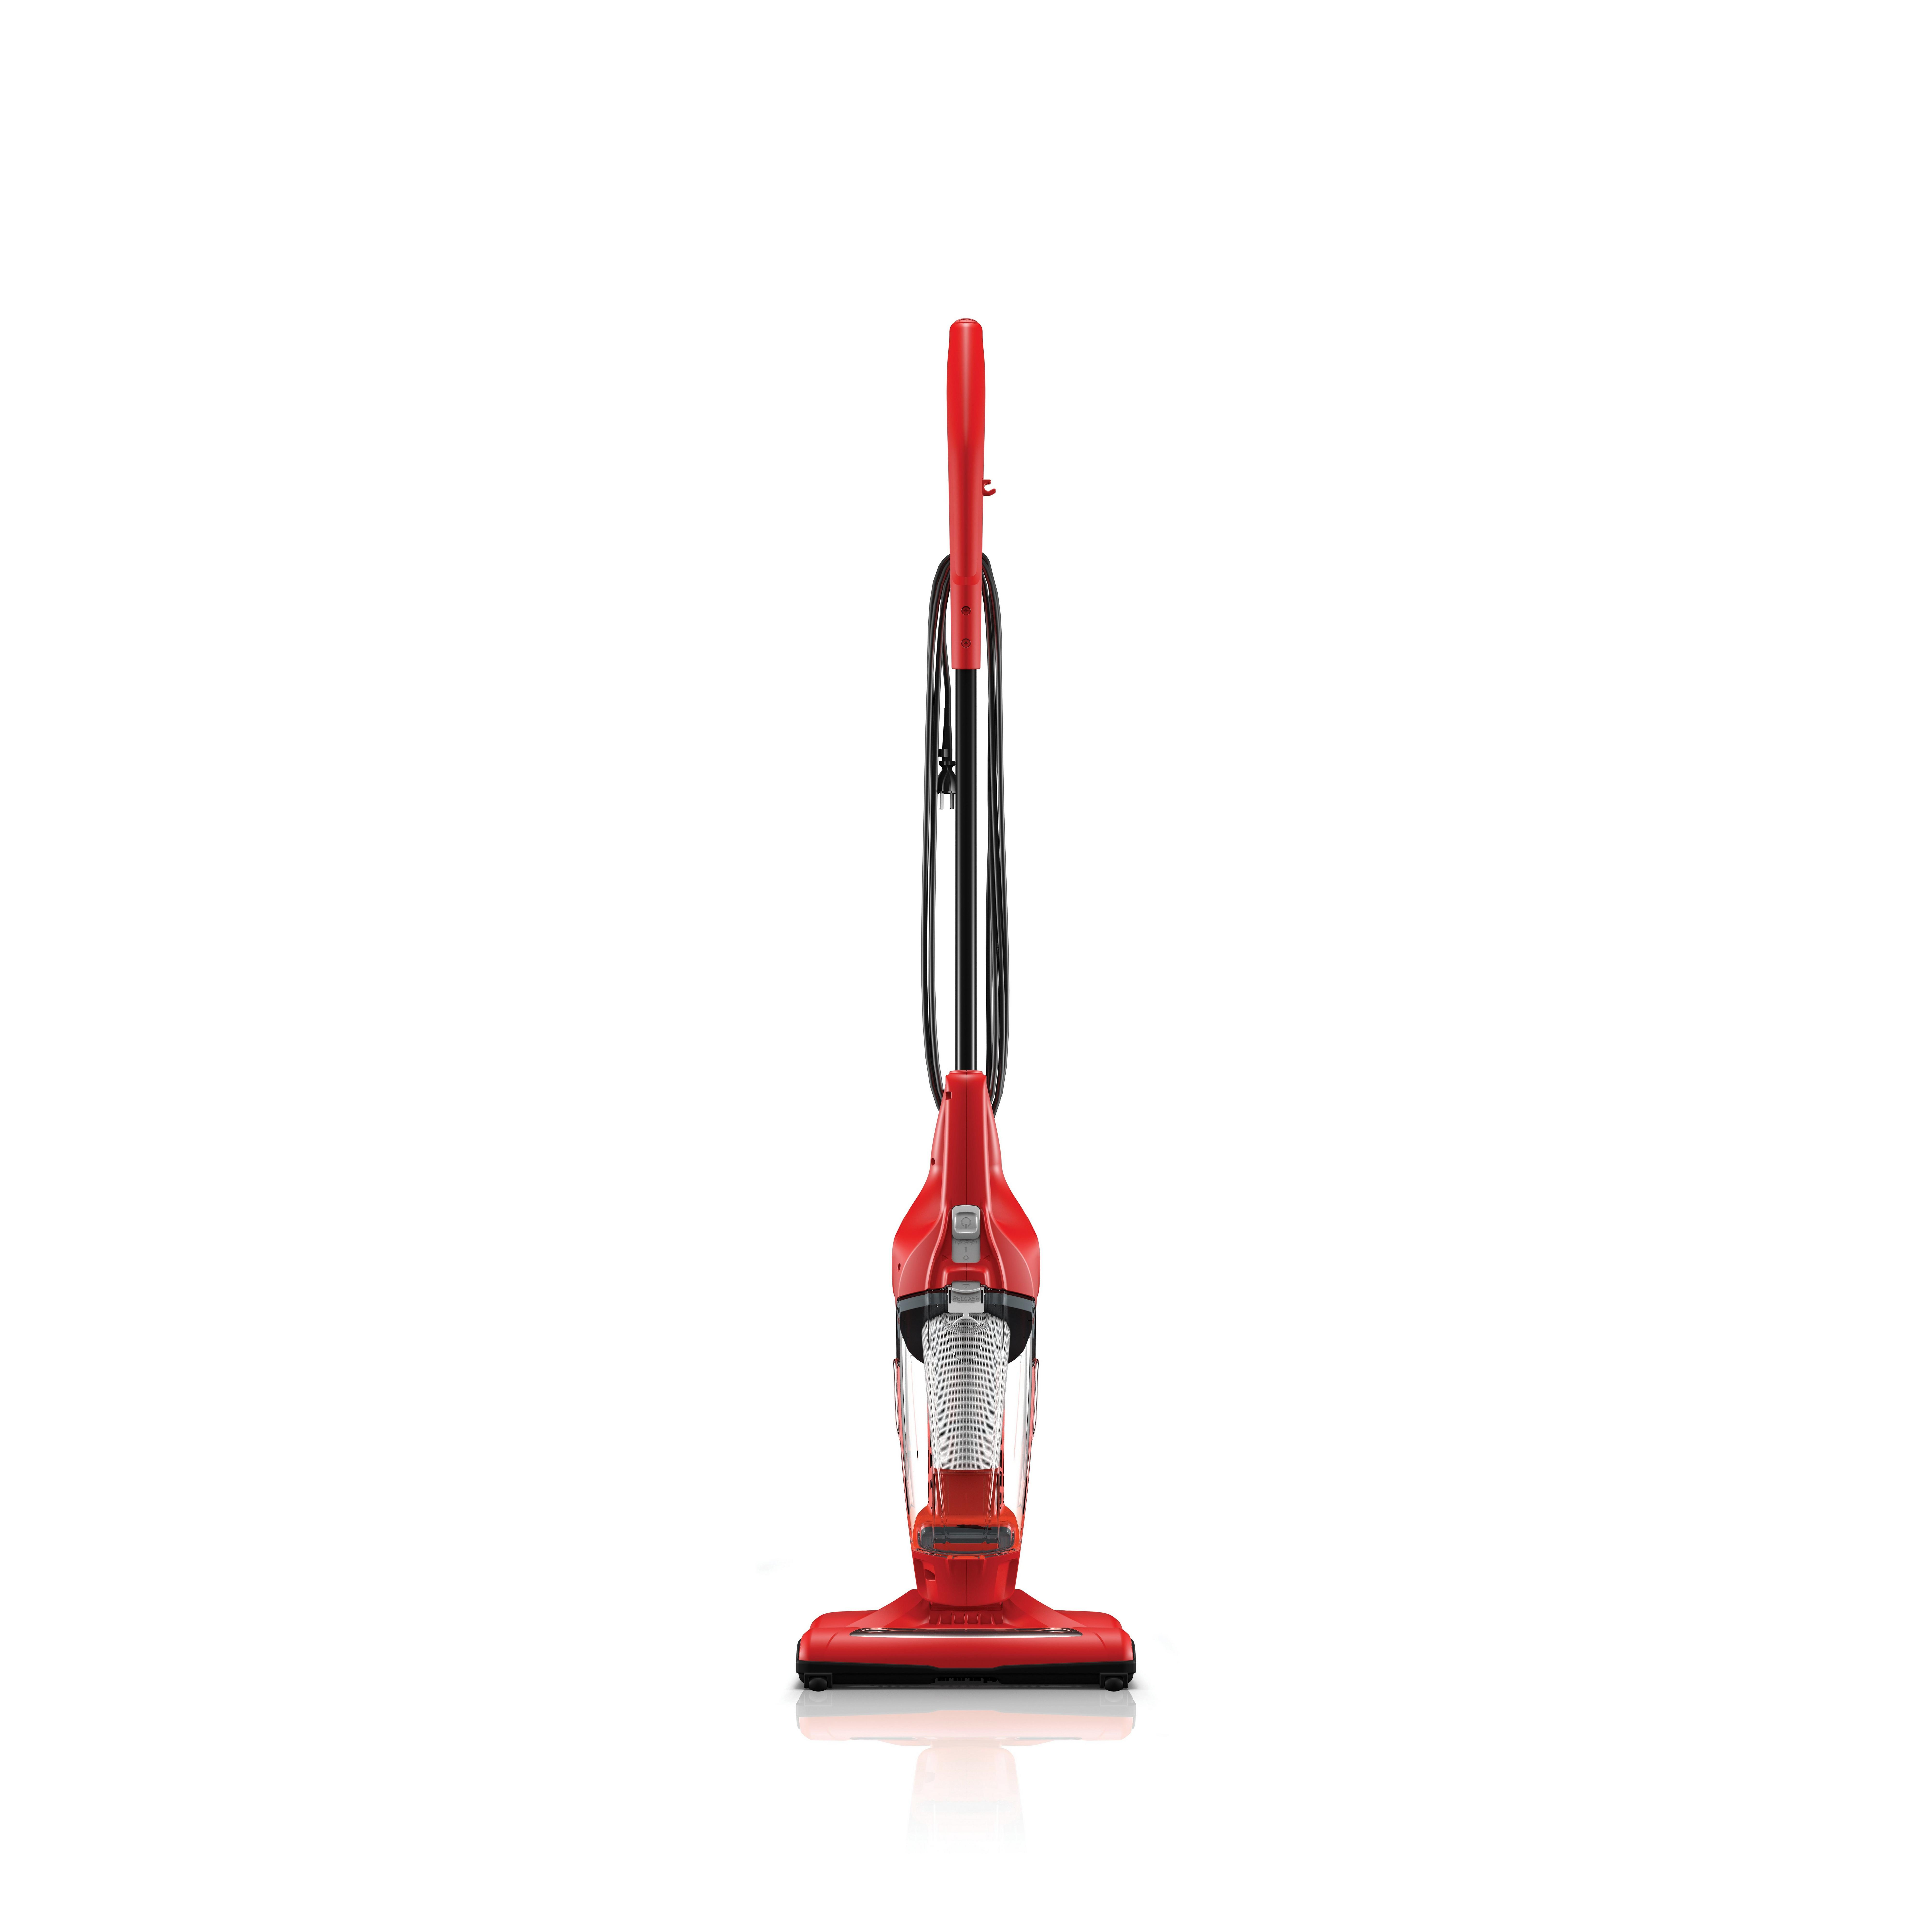 Vibe 3-in-1 Corded Bagless Stick Vacuum1